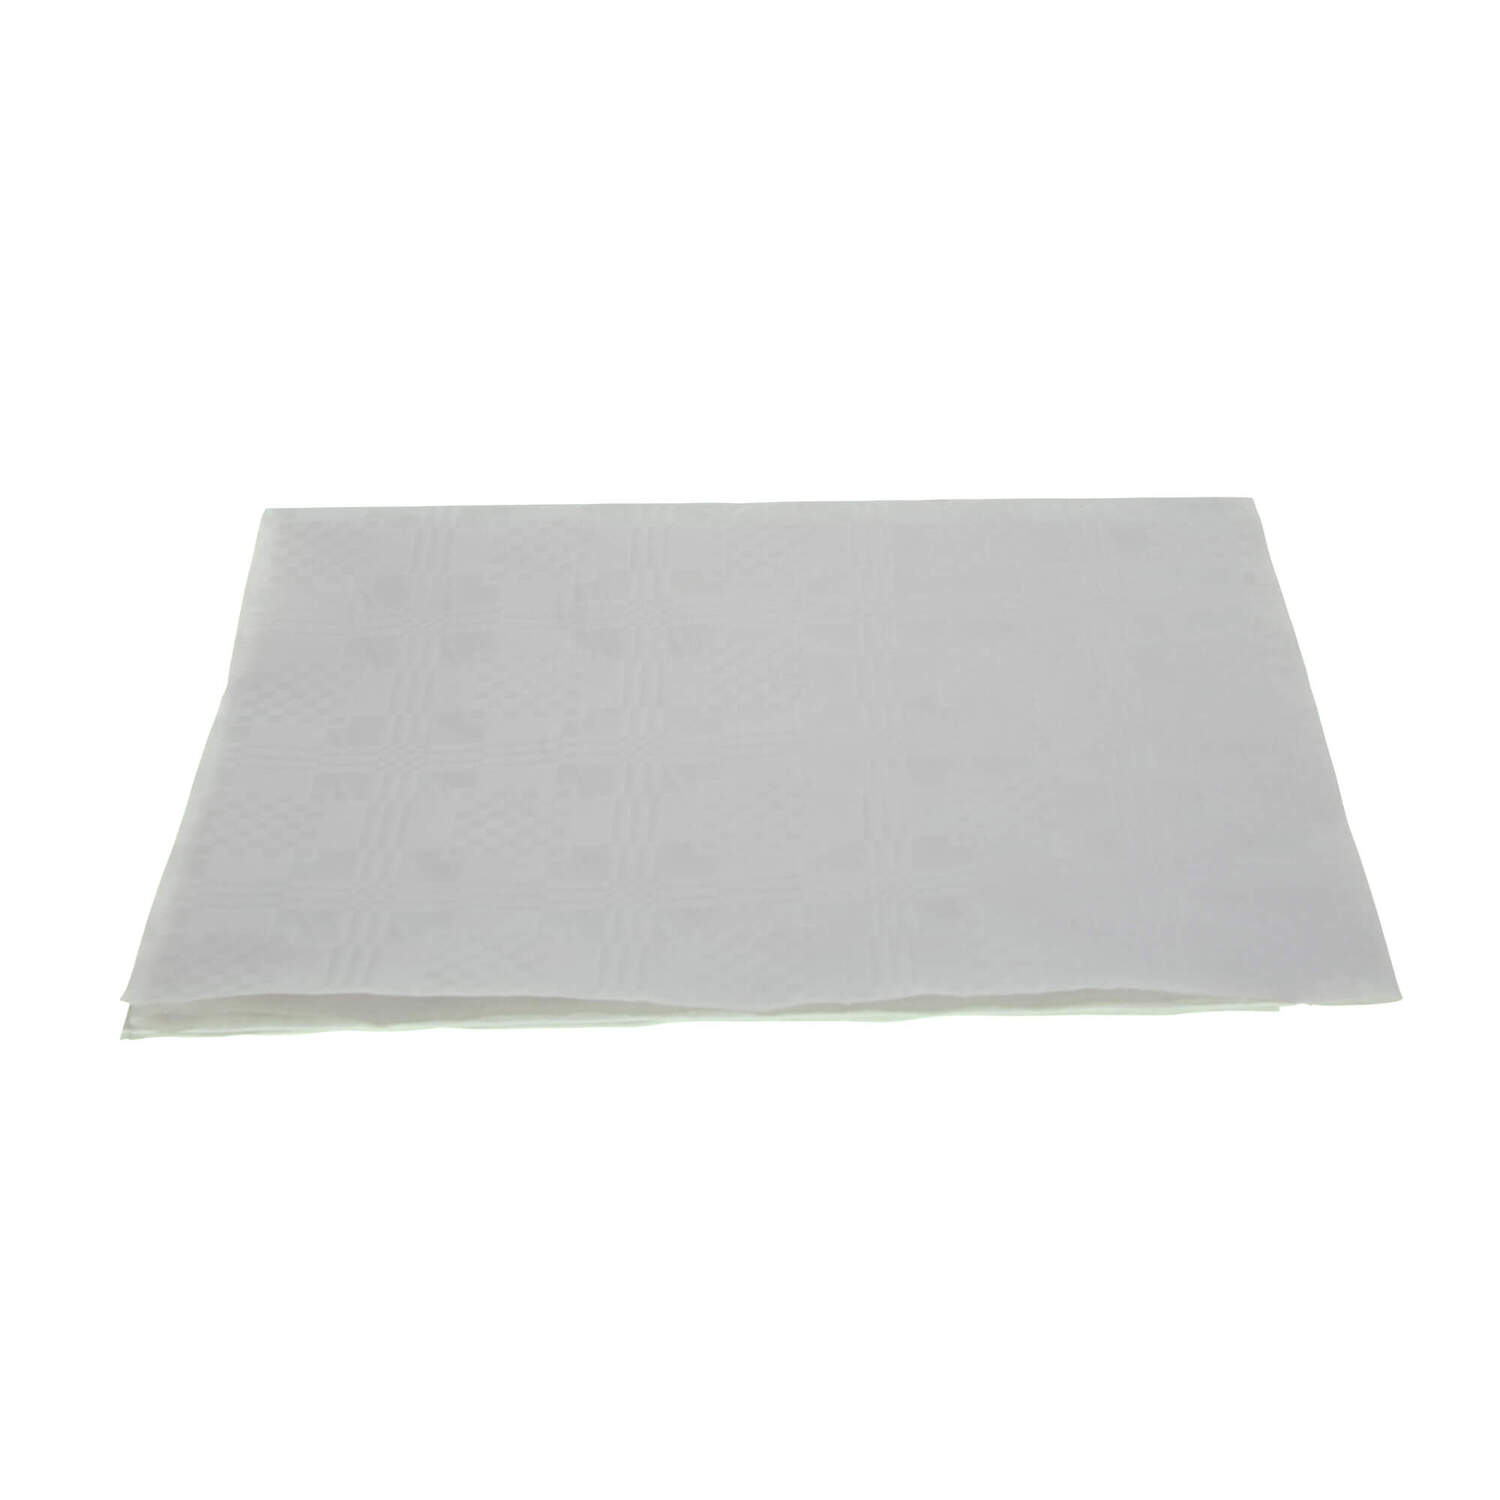 225 & Disposable Table Covers White 90 x 90cm 25pk